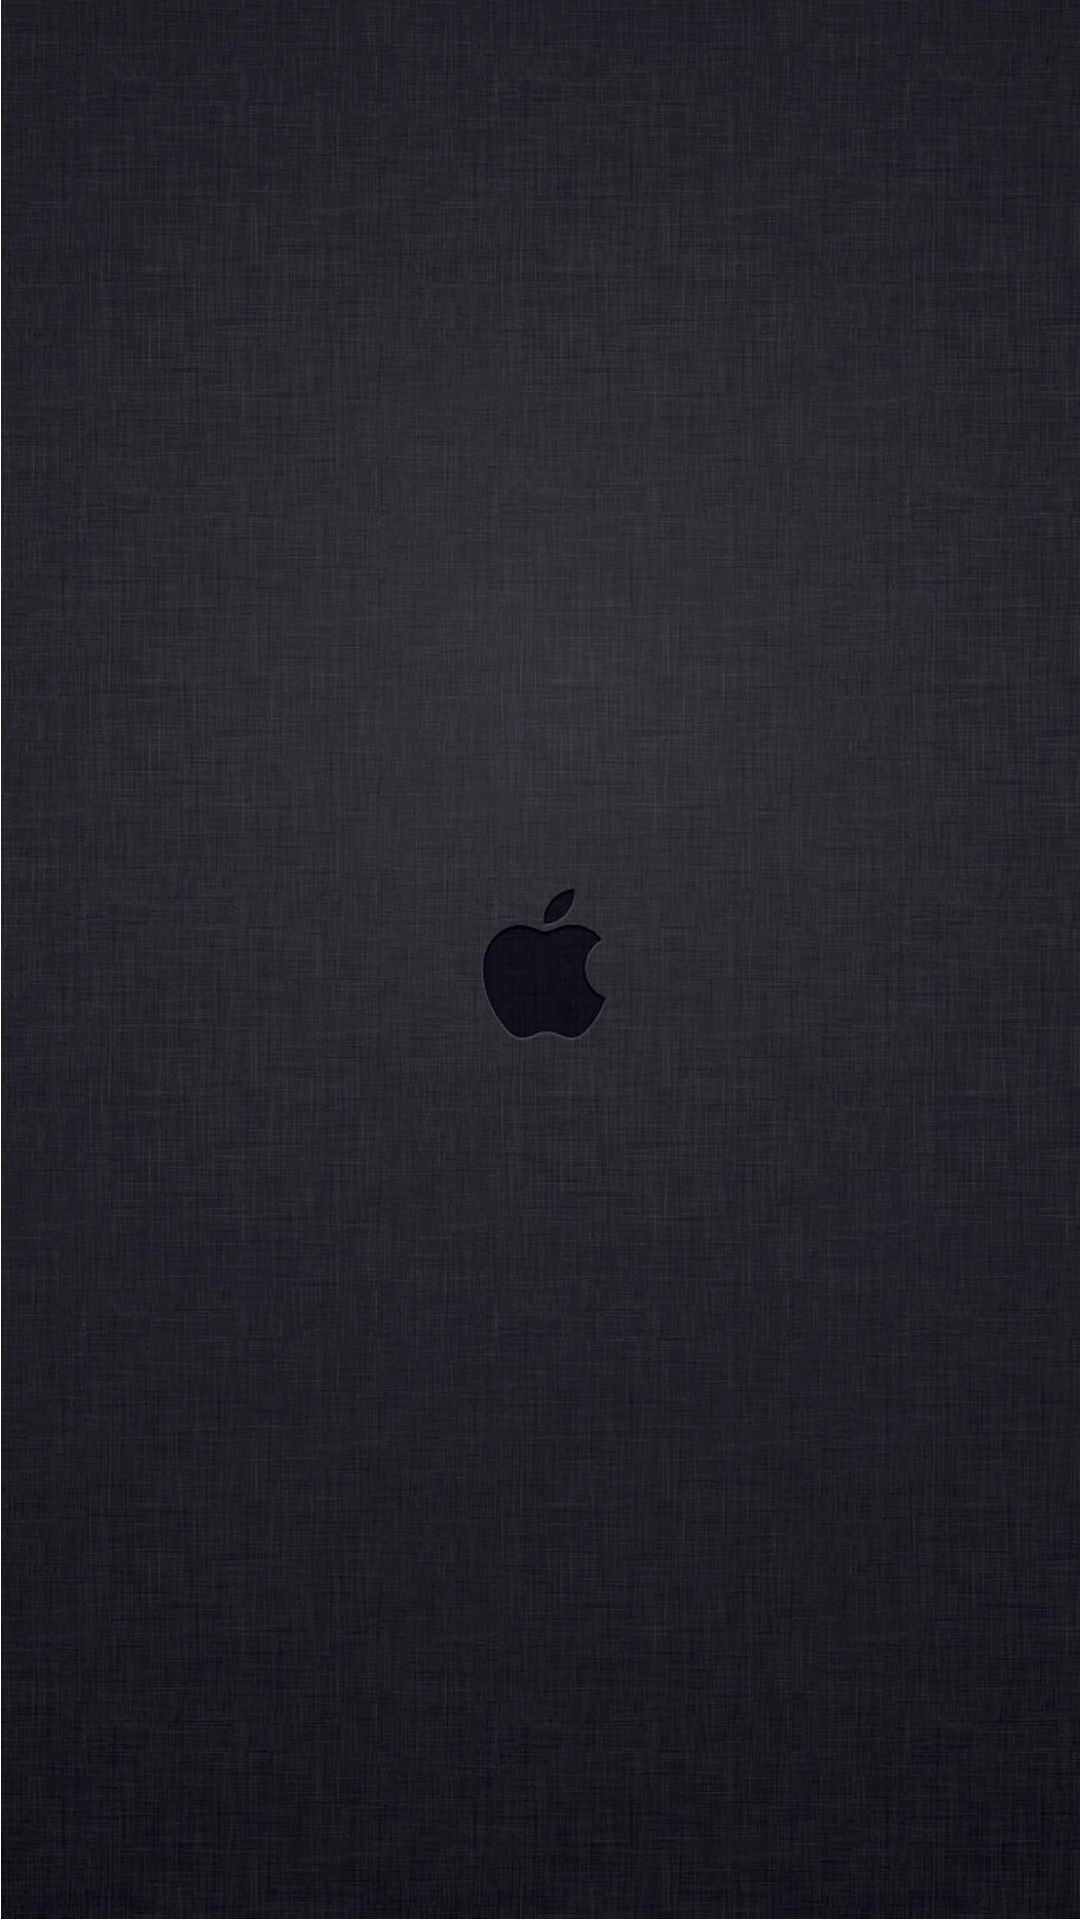 Best Of Macintosh Apple Logo Wallpapers Tap Image For More